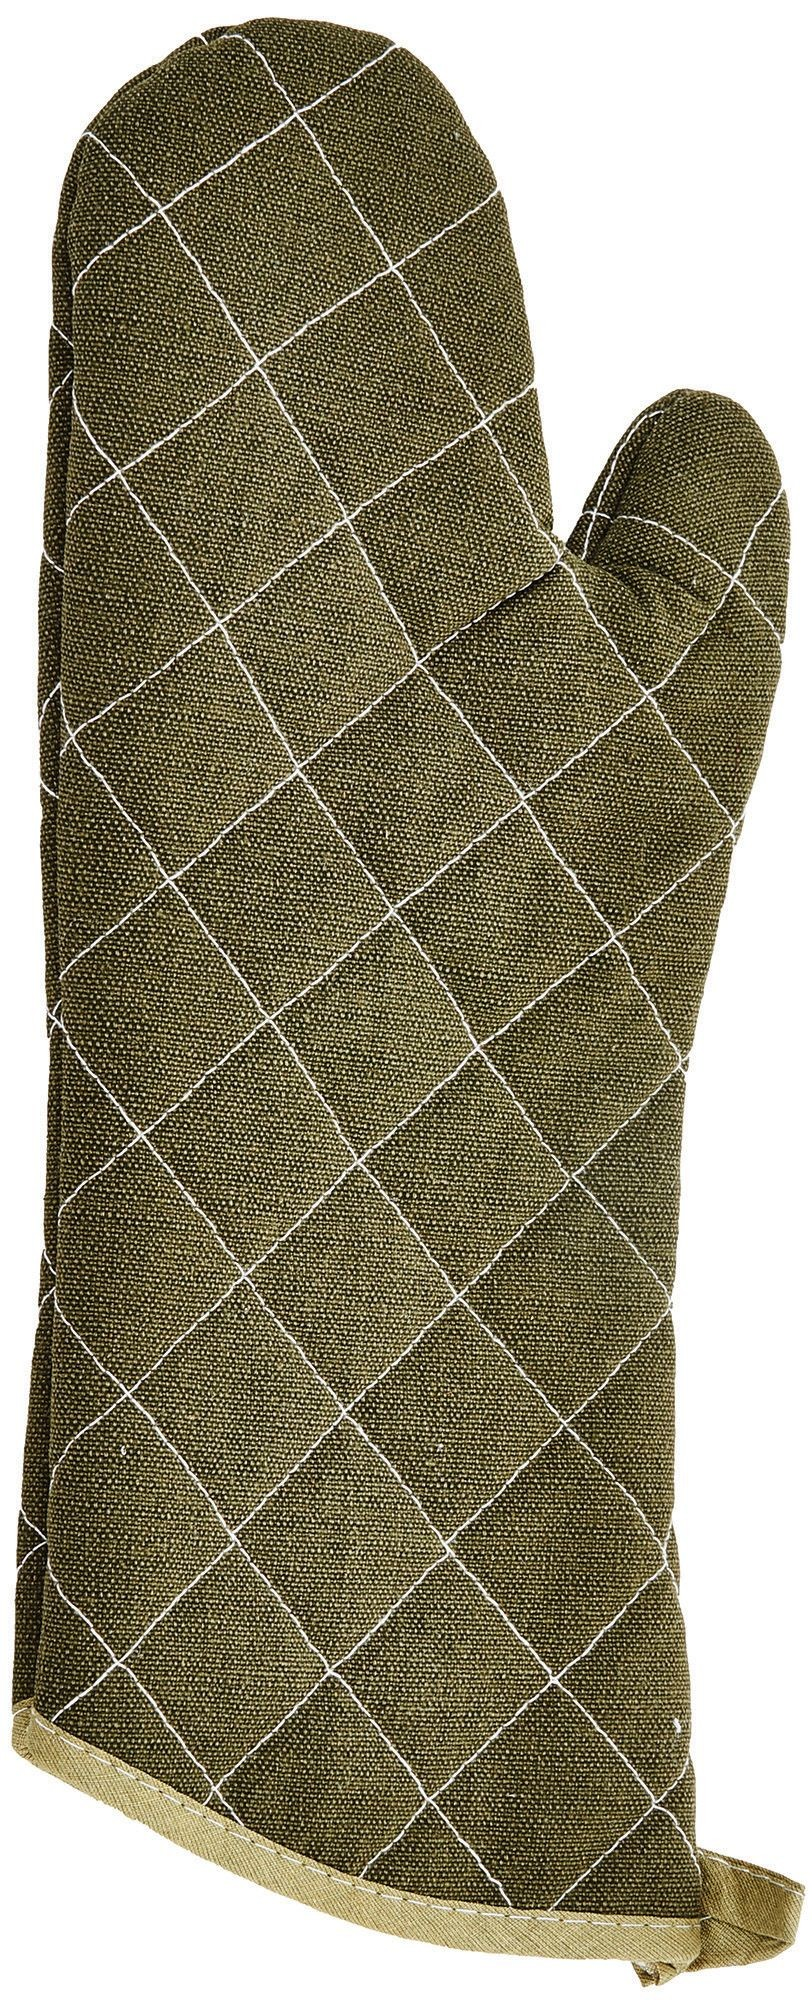 Winco OMF-15 Oven Mitt, Flame Resistant Up to 400F 15""